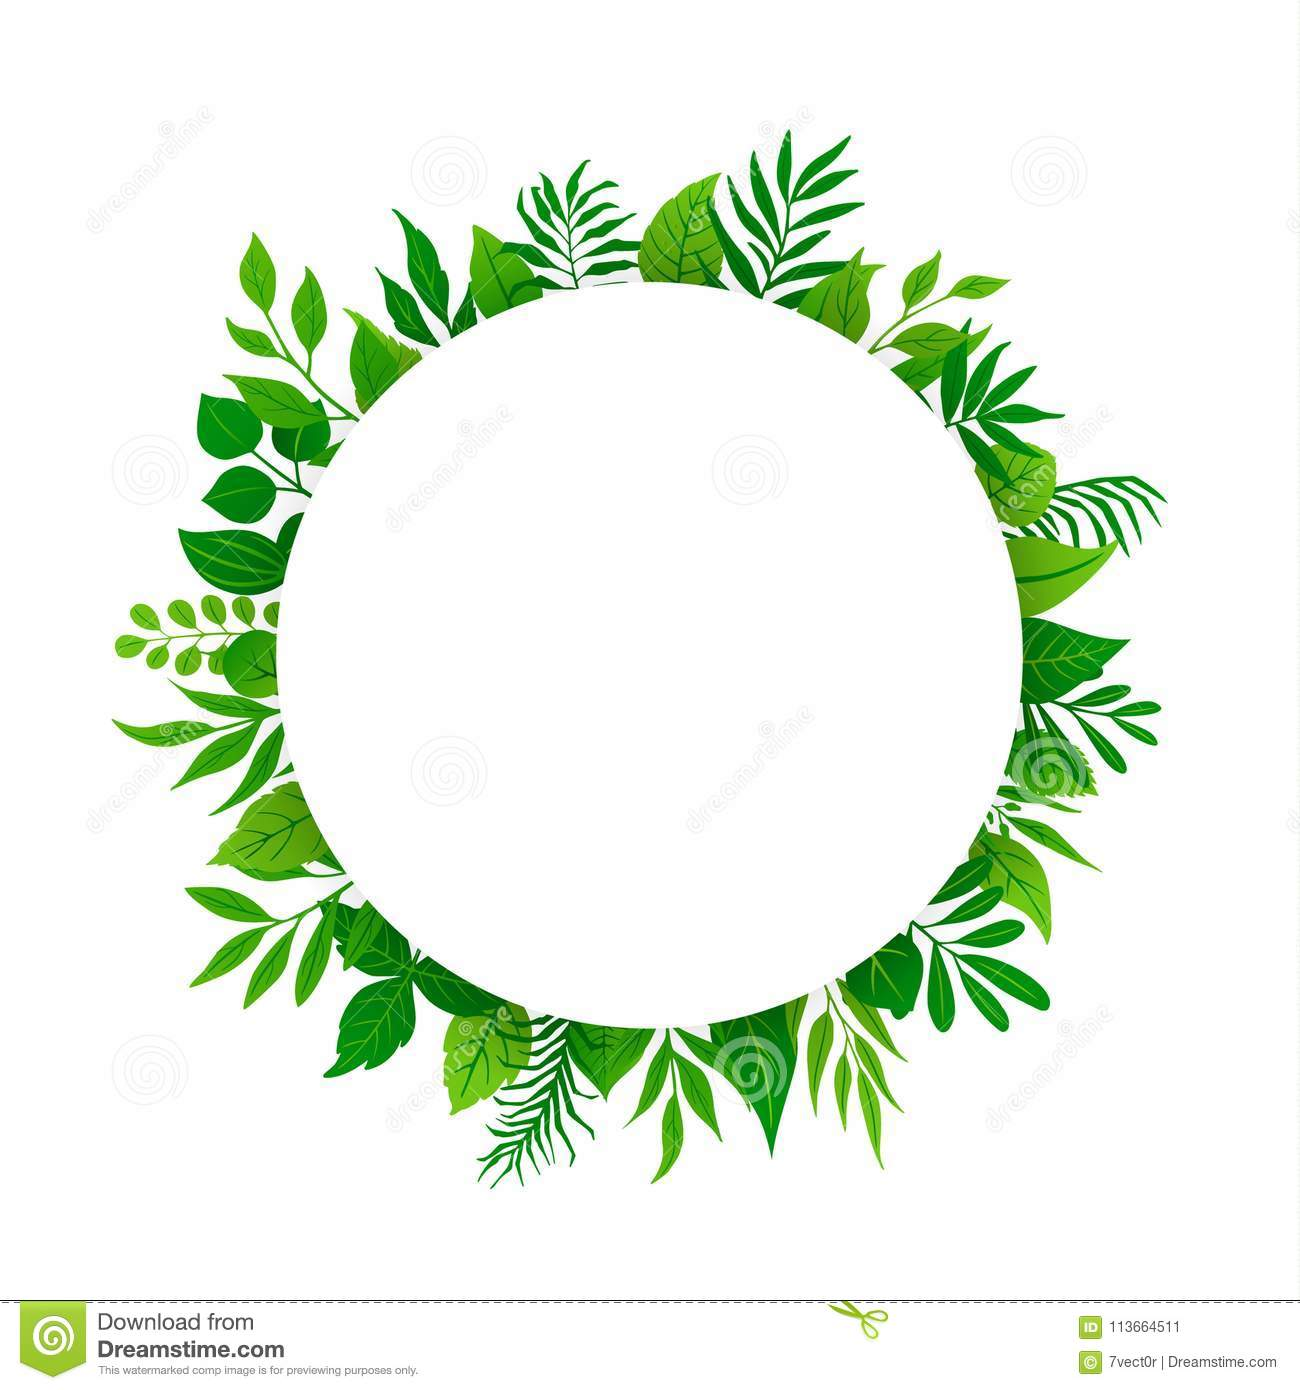 Summer spring green leaves branches twigs plants foliage greenery round circle frame with place for text